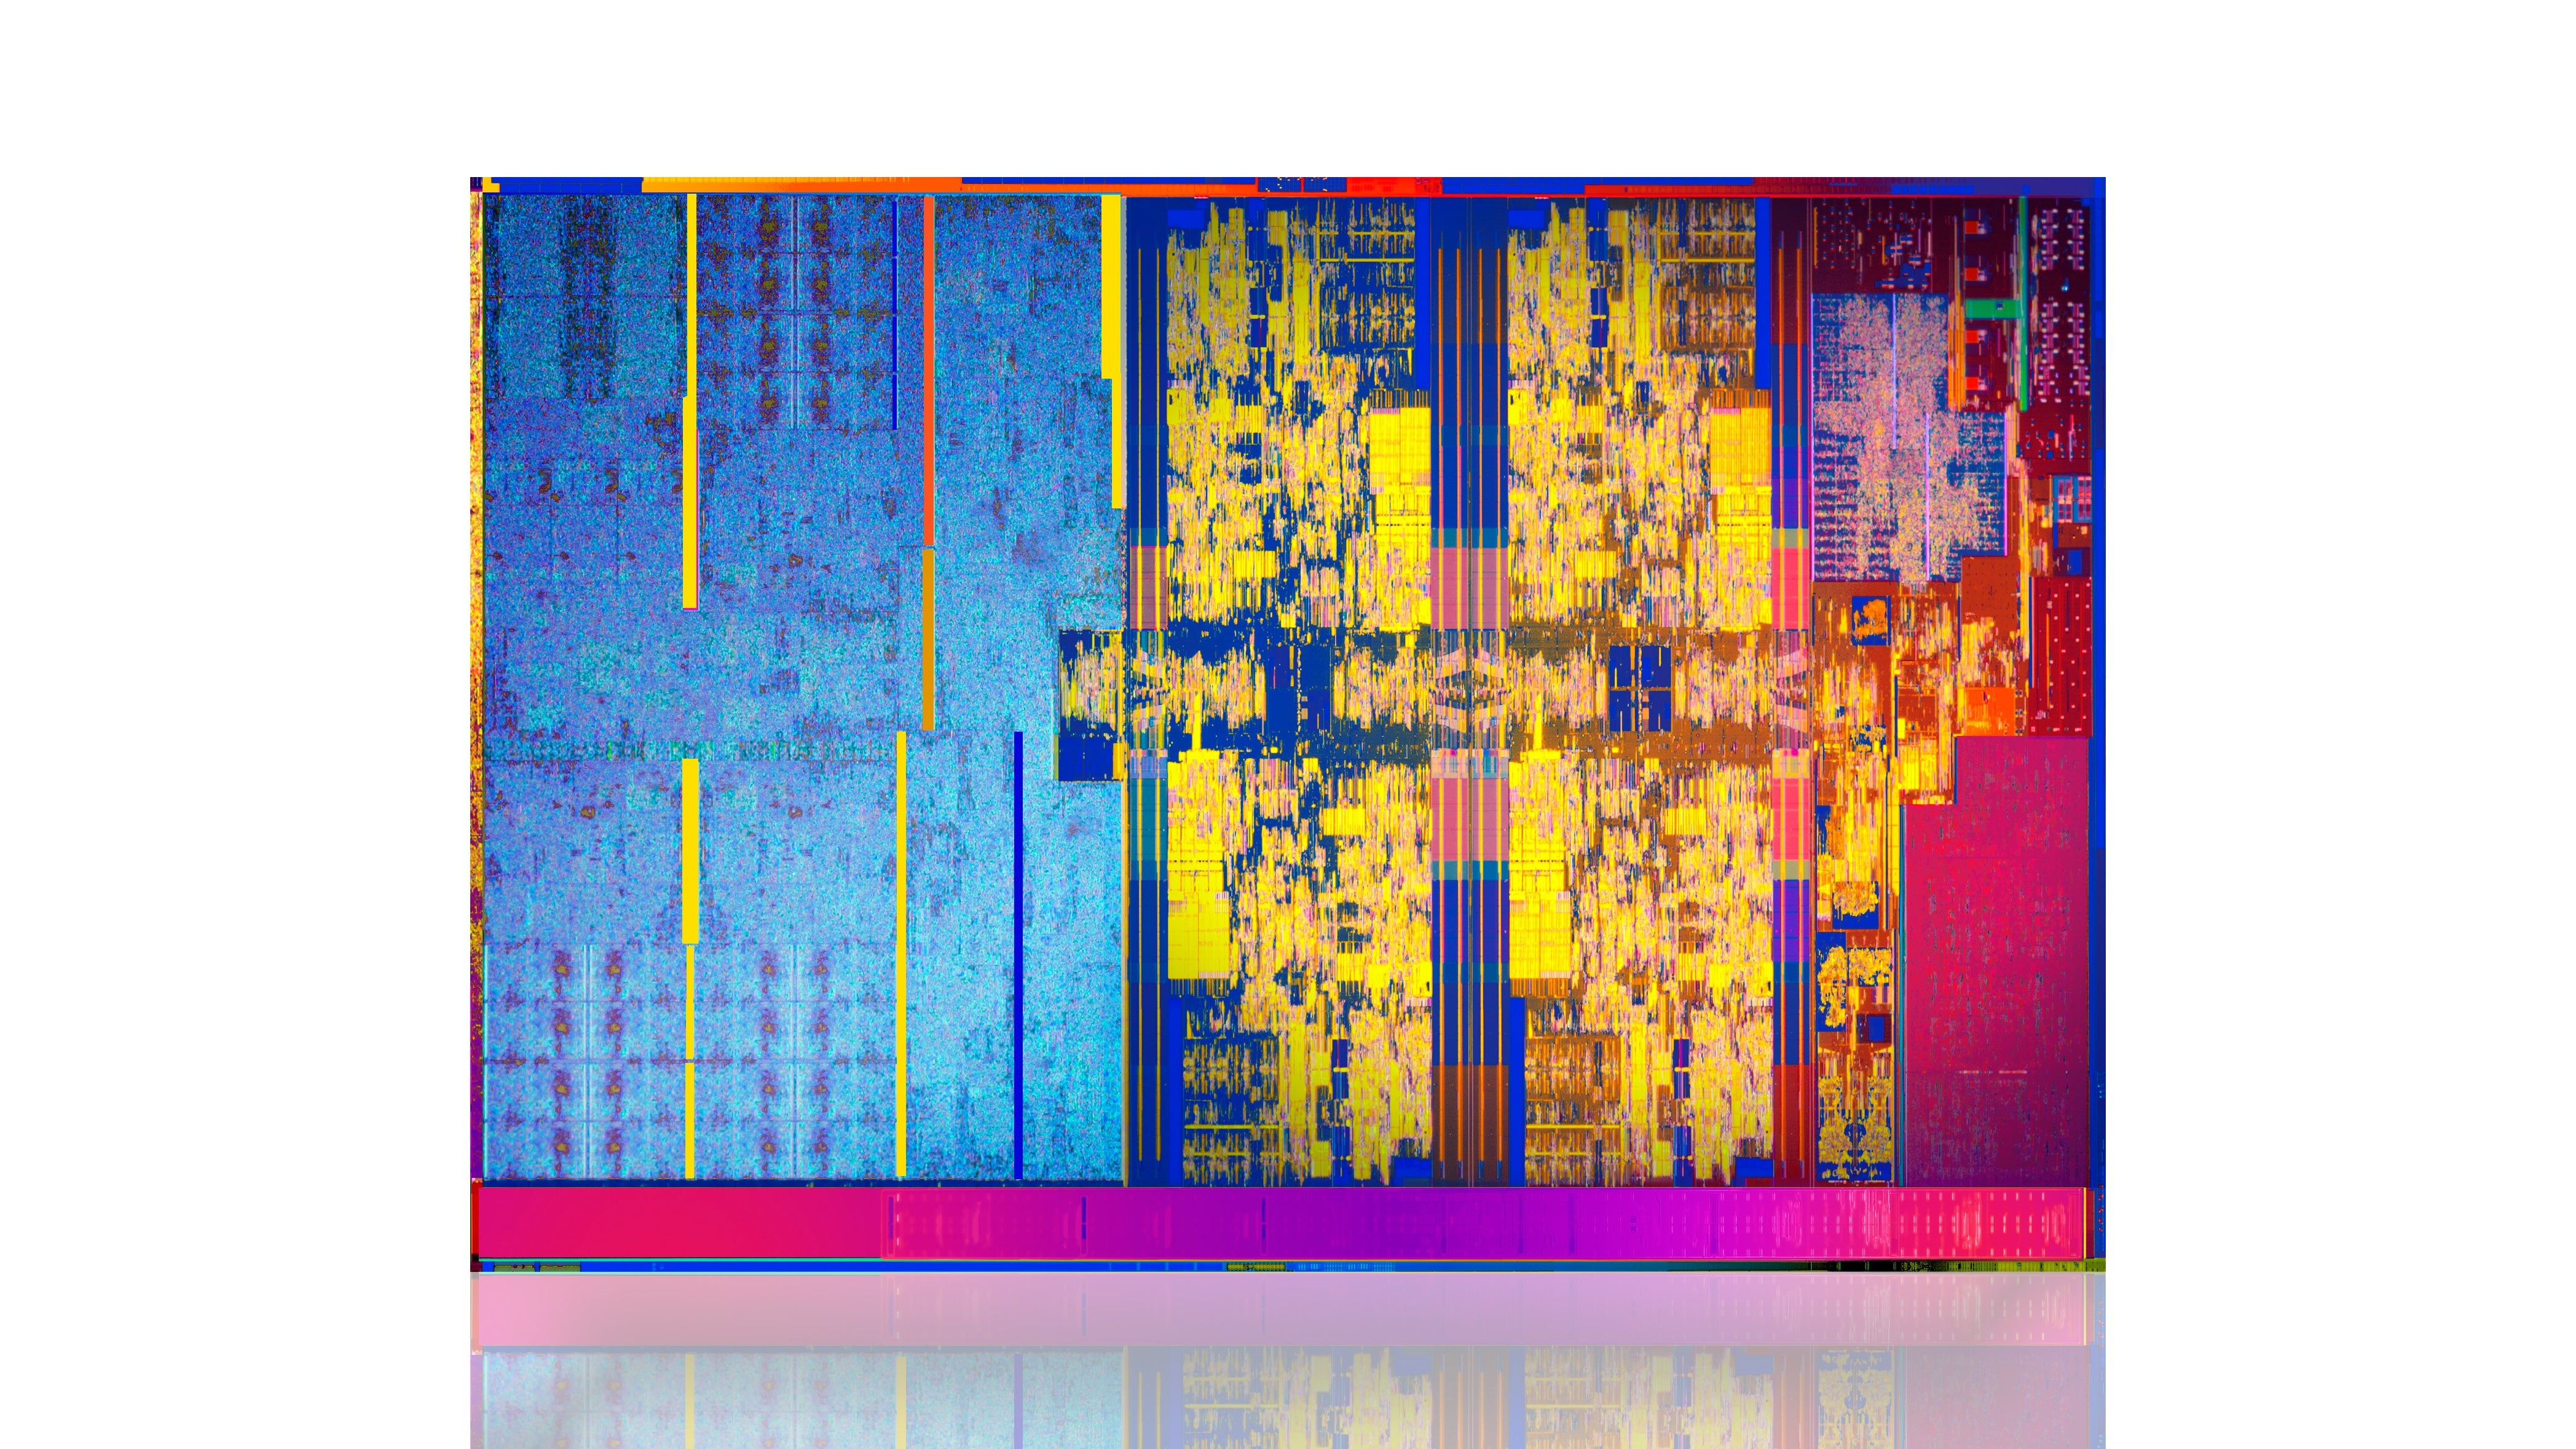 Intel's New Coffee Lake Processors: What You Need To Know